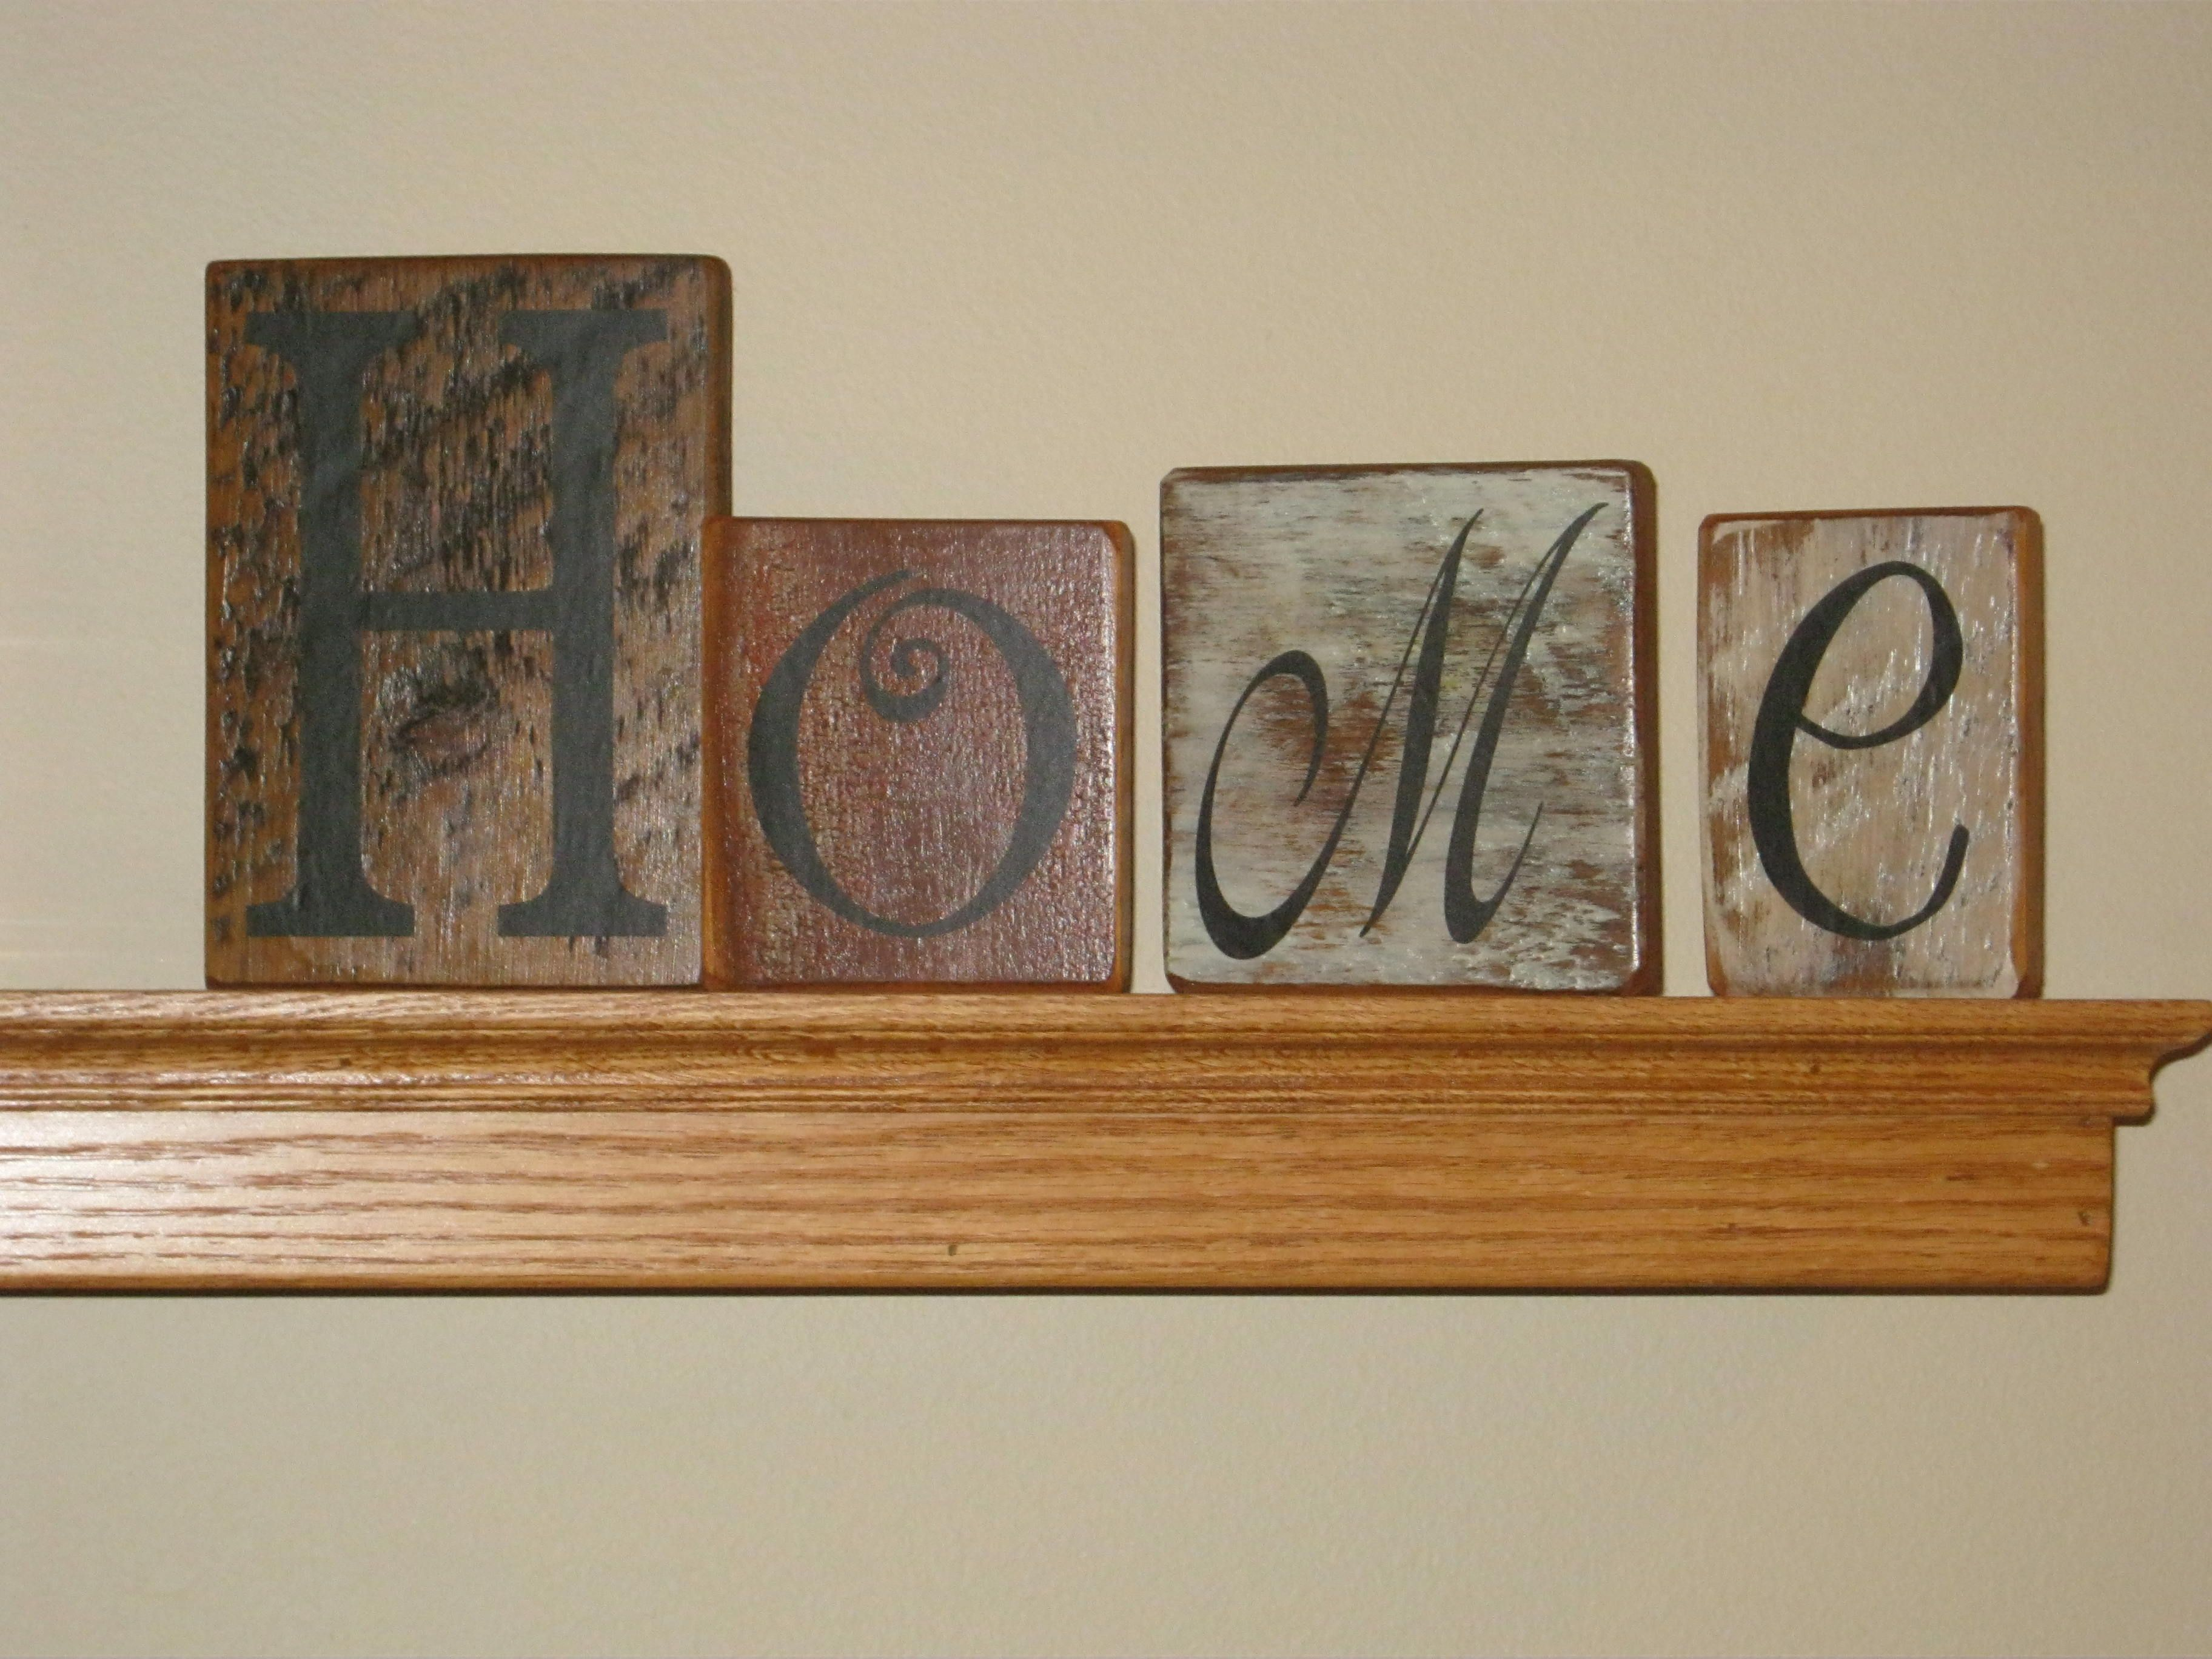 Barn Wood Art Ideas Barnwood Shelf Ideas Google Search Barnwood Ideas